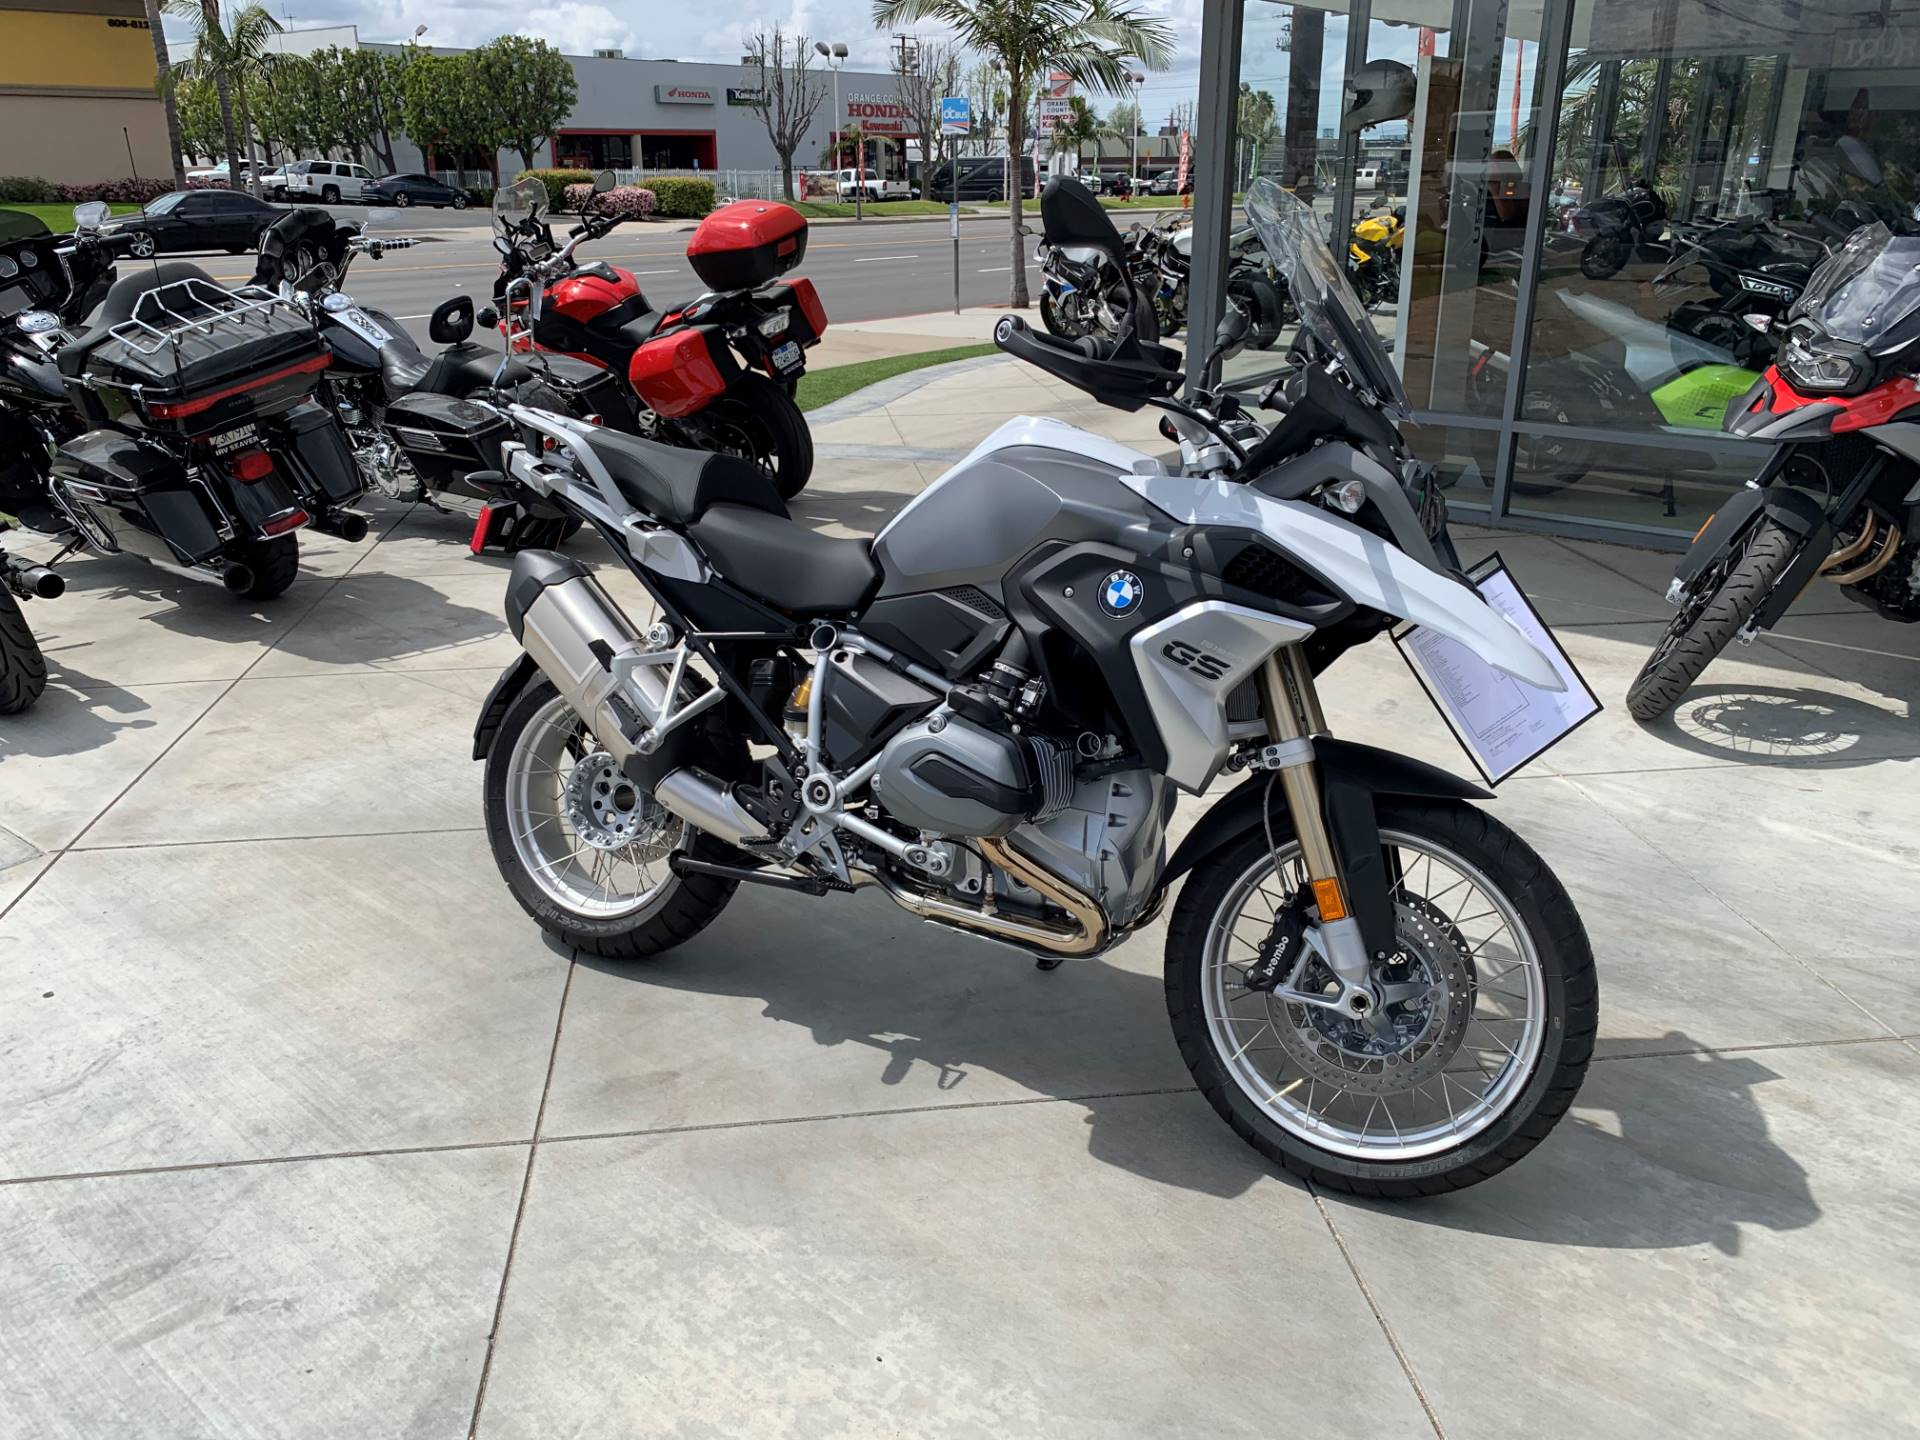 2018 BMW R 1200 GS in Orange, California